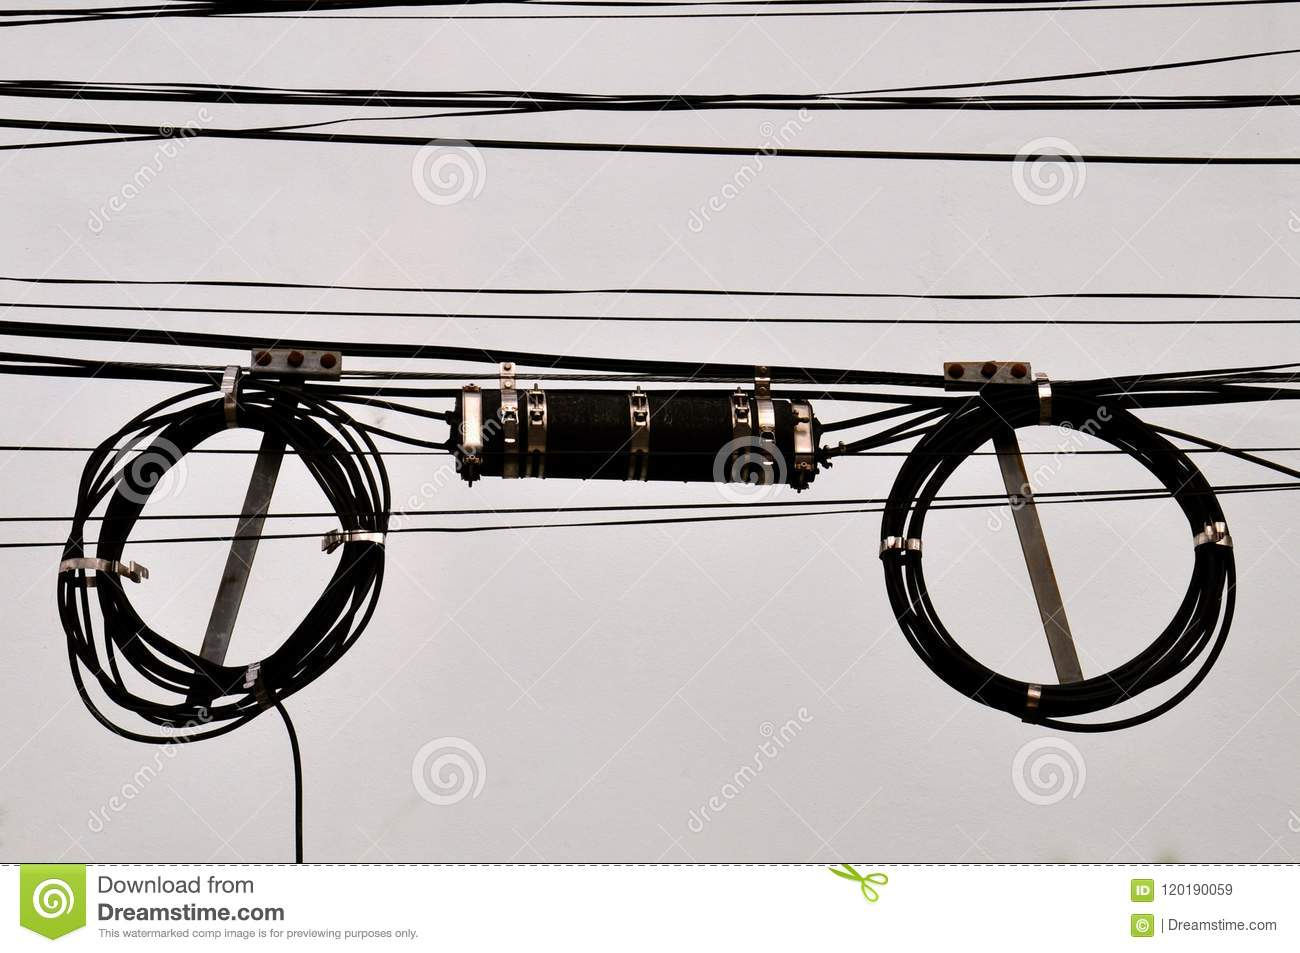 Telephone Wiring Junction Box Schematic Diagrams Phone Coiled Wires And Stock Image Of Indoor Download